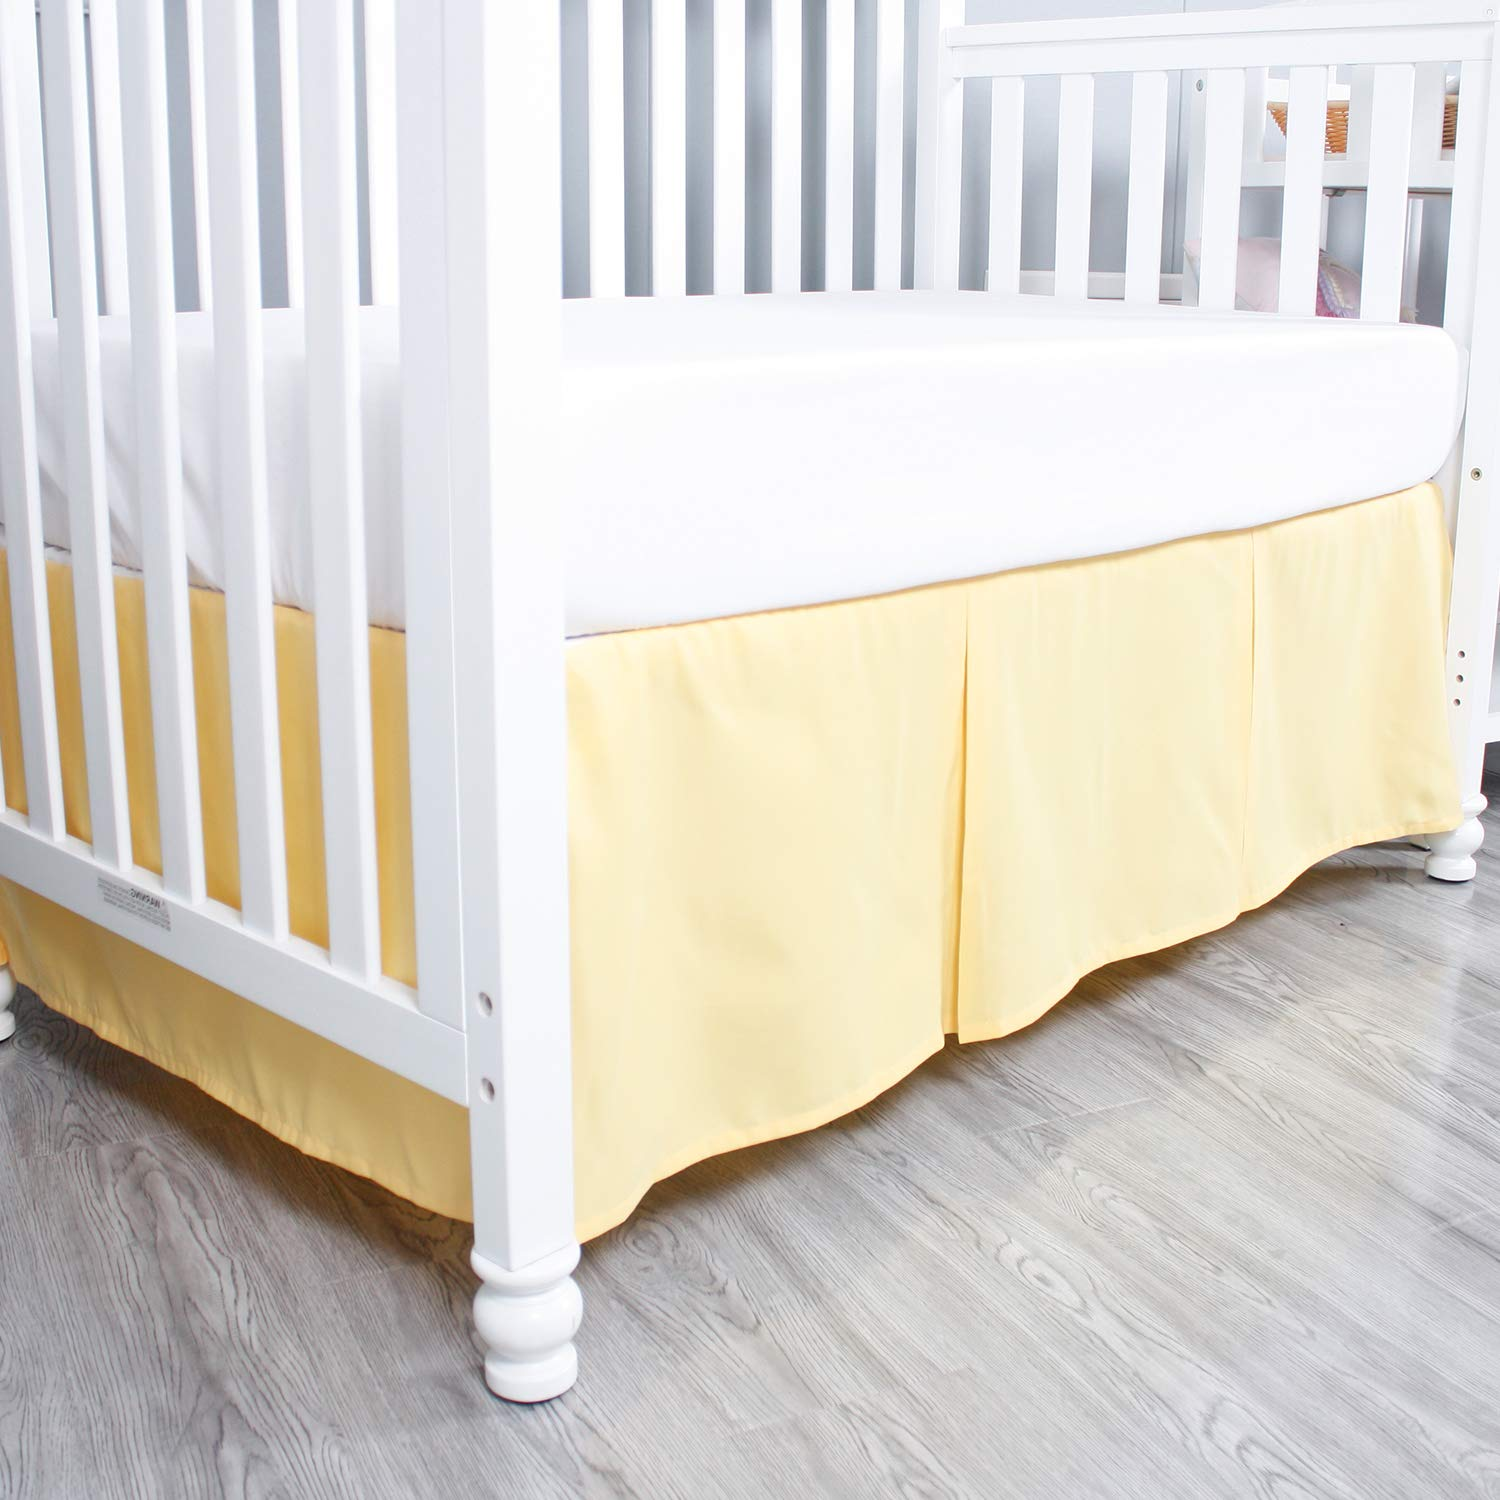 Length Drop Blue /& Yellow Both Long Sides Pleated Split Corners Dust Ruffle for Easy Placement Inside of Standard Crib Bed 14 inches Belsden 2 Pack Crib Skirts with Durable Woven Platform 36cm